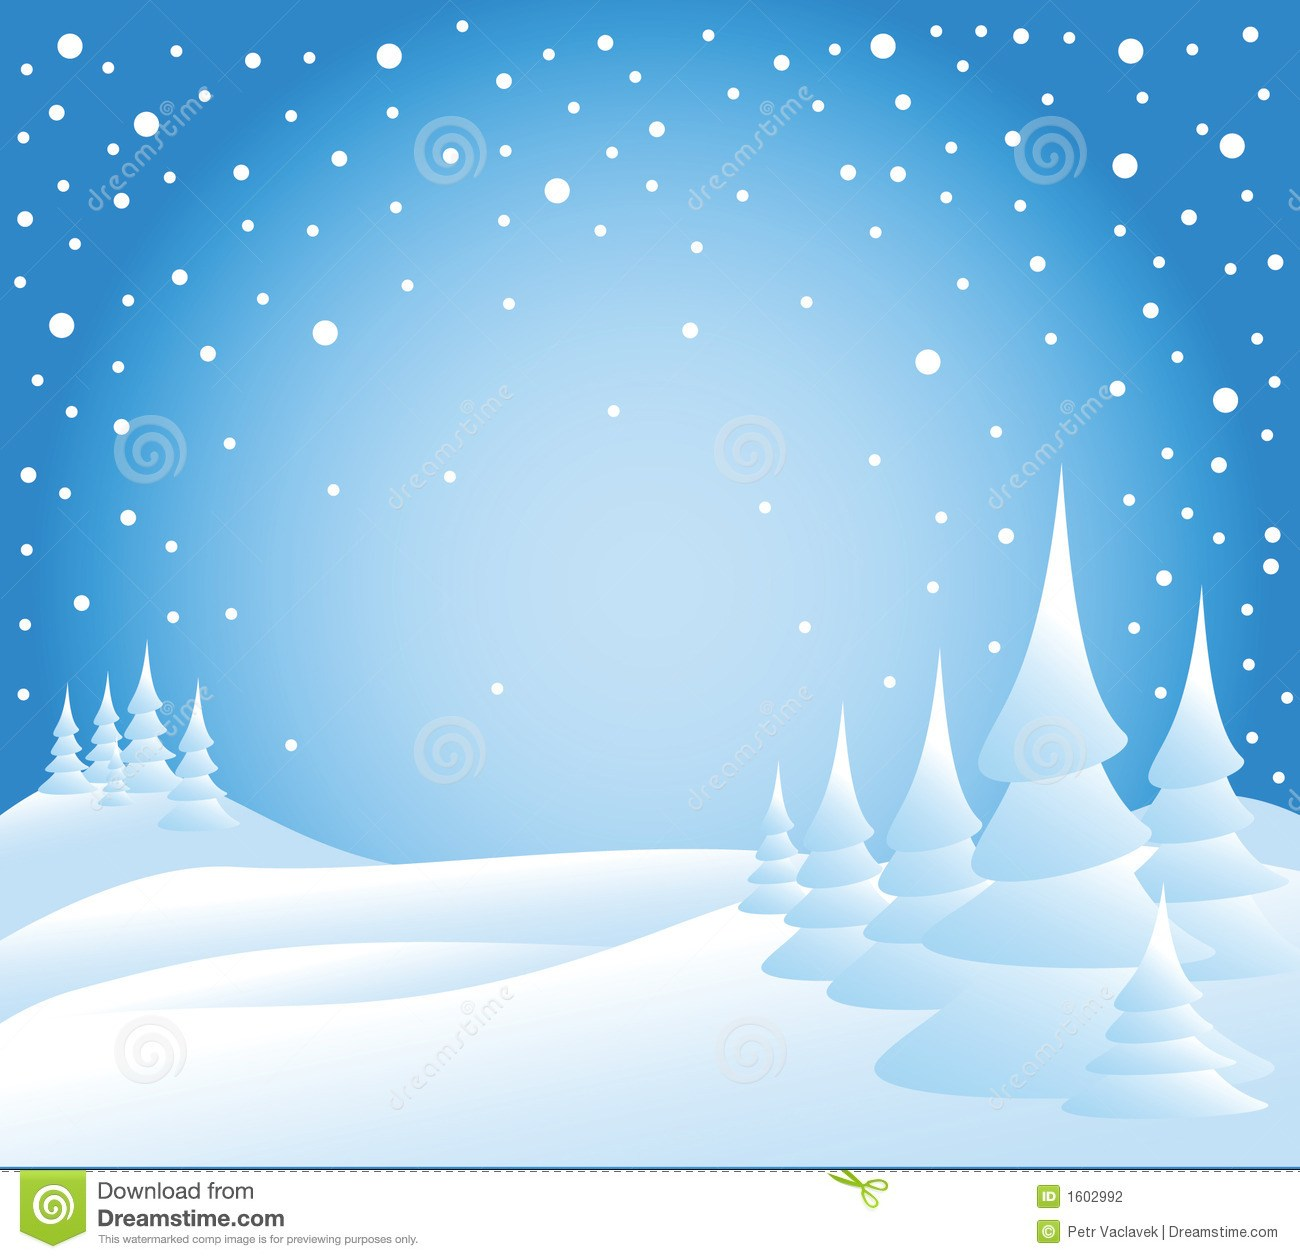 Snow fall clipart clip library stock Snow fall clipart 3 » Clipart Portal clip library stock